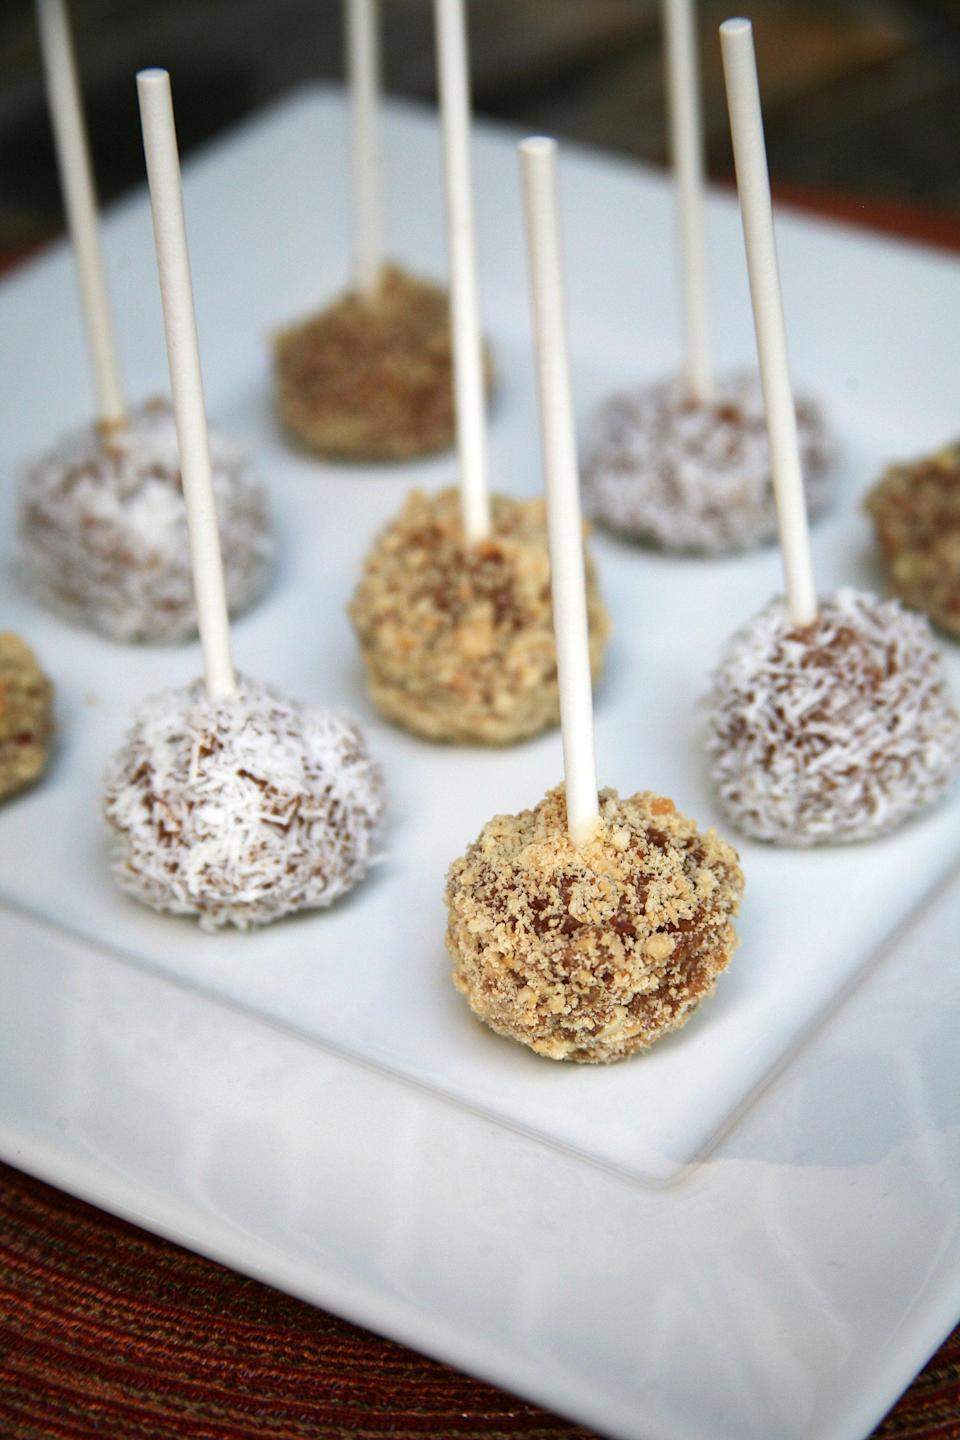 """<p>You only need dates, soy milk, apples, and the topping of your choice to make these adorable treats on a stick.</p> <p><strong>Get the recipe:</strong> <a href=""""http://www.popsugar.com/fitness/Healthy-Caramel-Apples-38511592?ref=37777034"""" class=""""link rapid-noclick-resp"""" rel=""""nofollow noopener"""" target=""""_blank"""" data-ylk=""""slk:mini caramel apples"""">mini caramel apples</a></p>"""